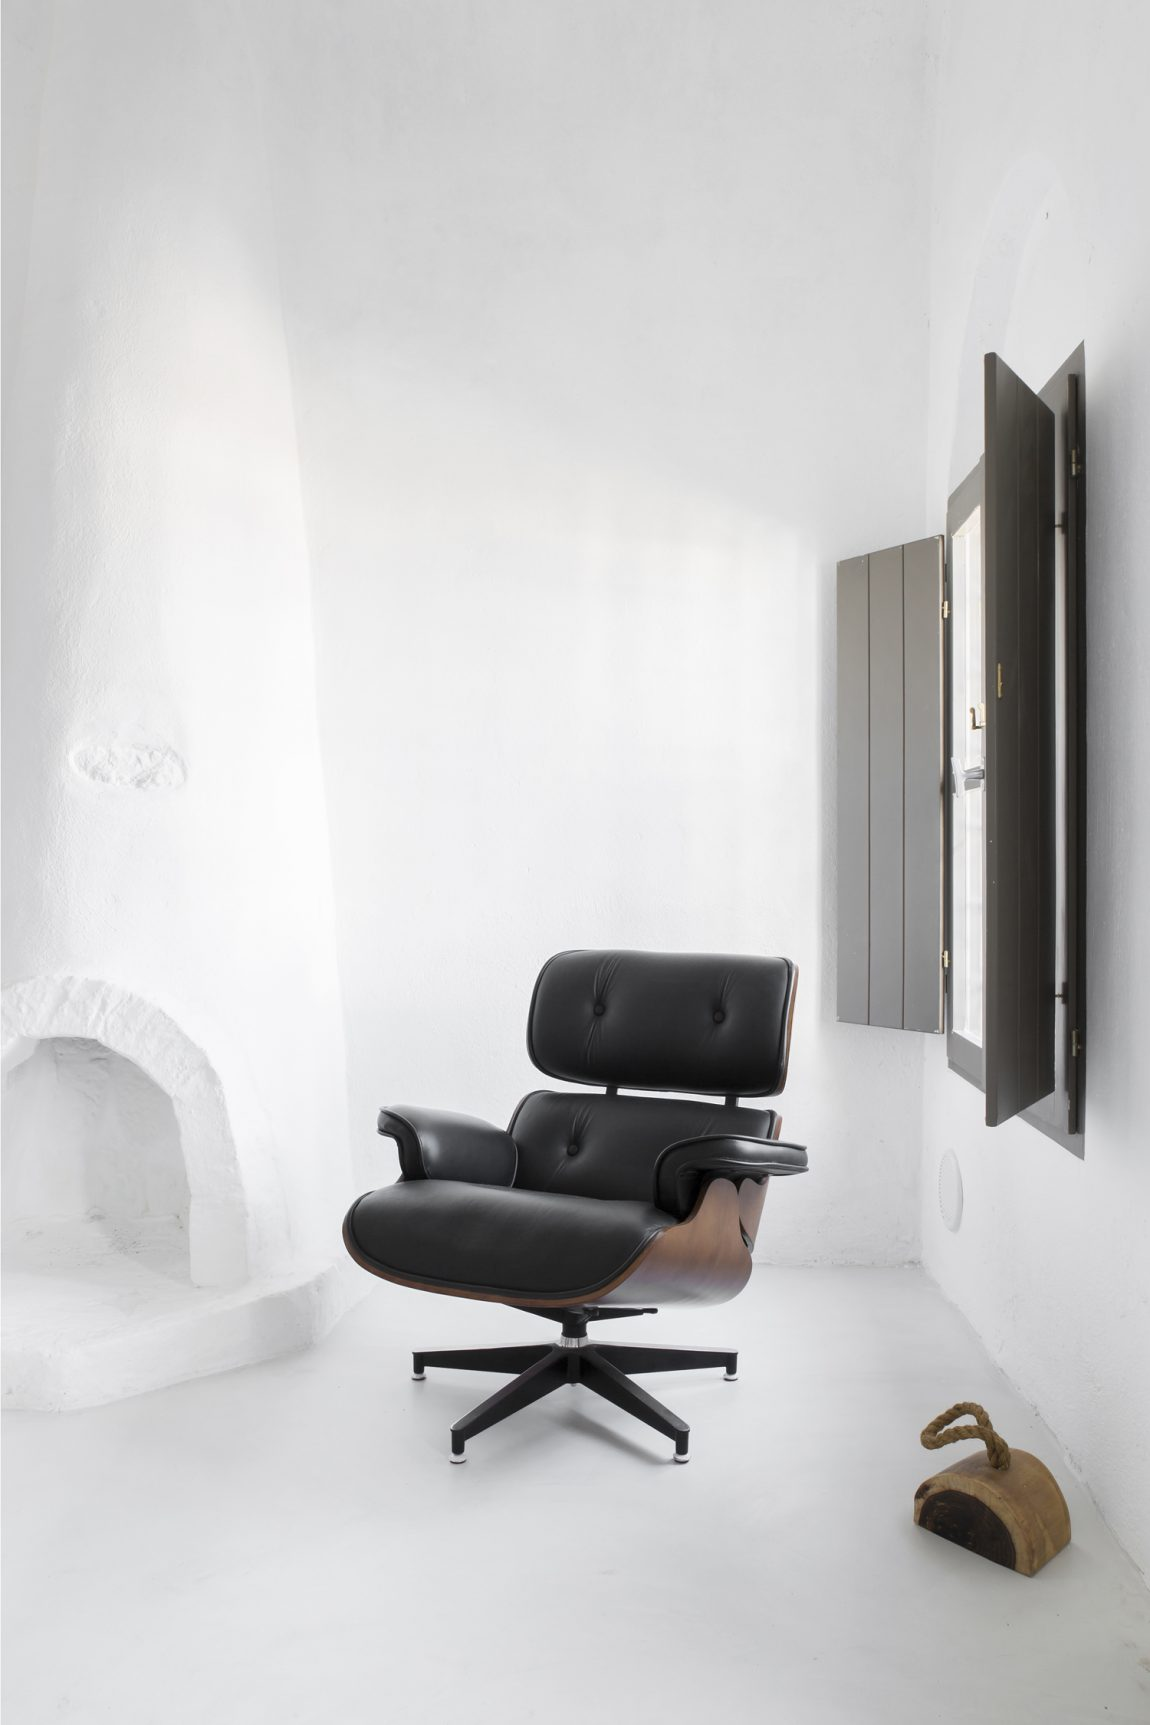 eames-lounge-chair-sophia-suites